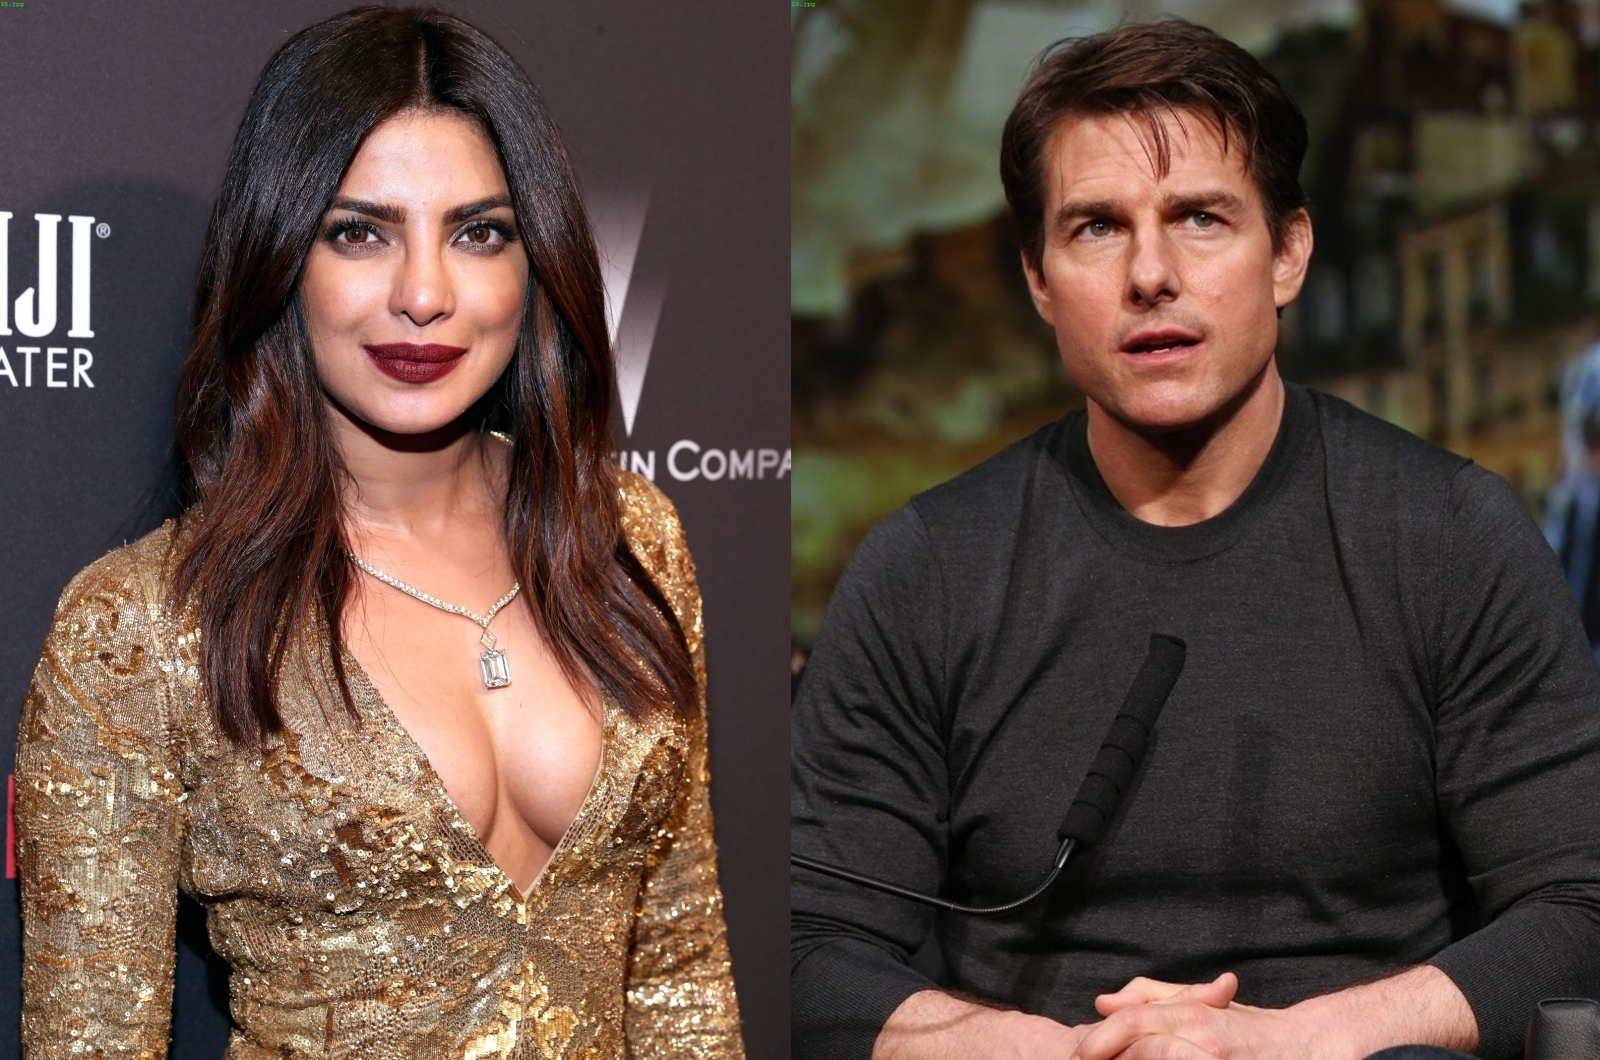 Priyanka Chopra and Tom Cruise